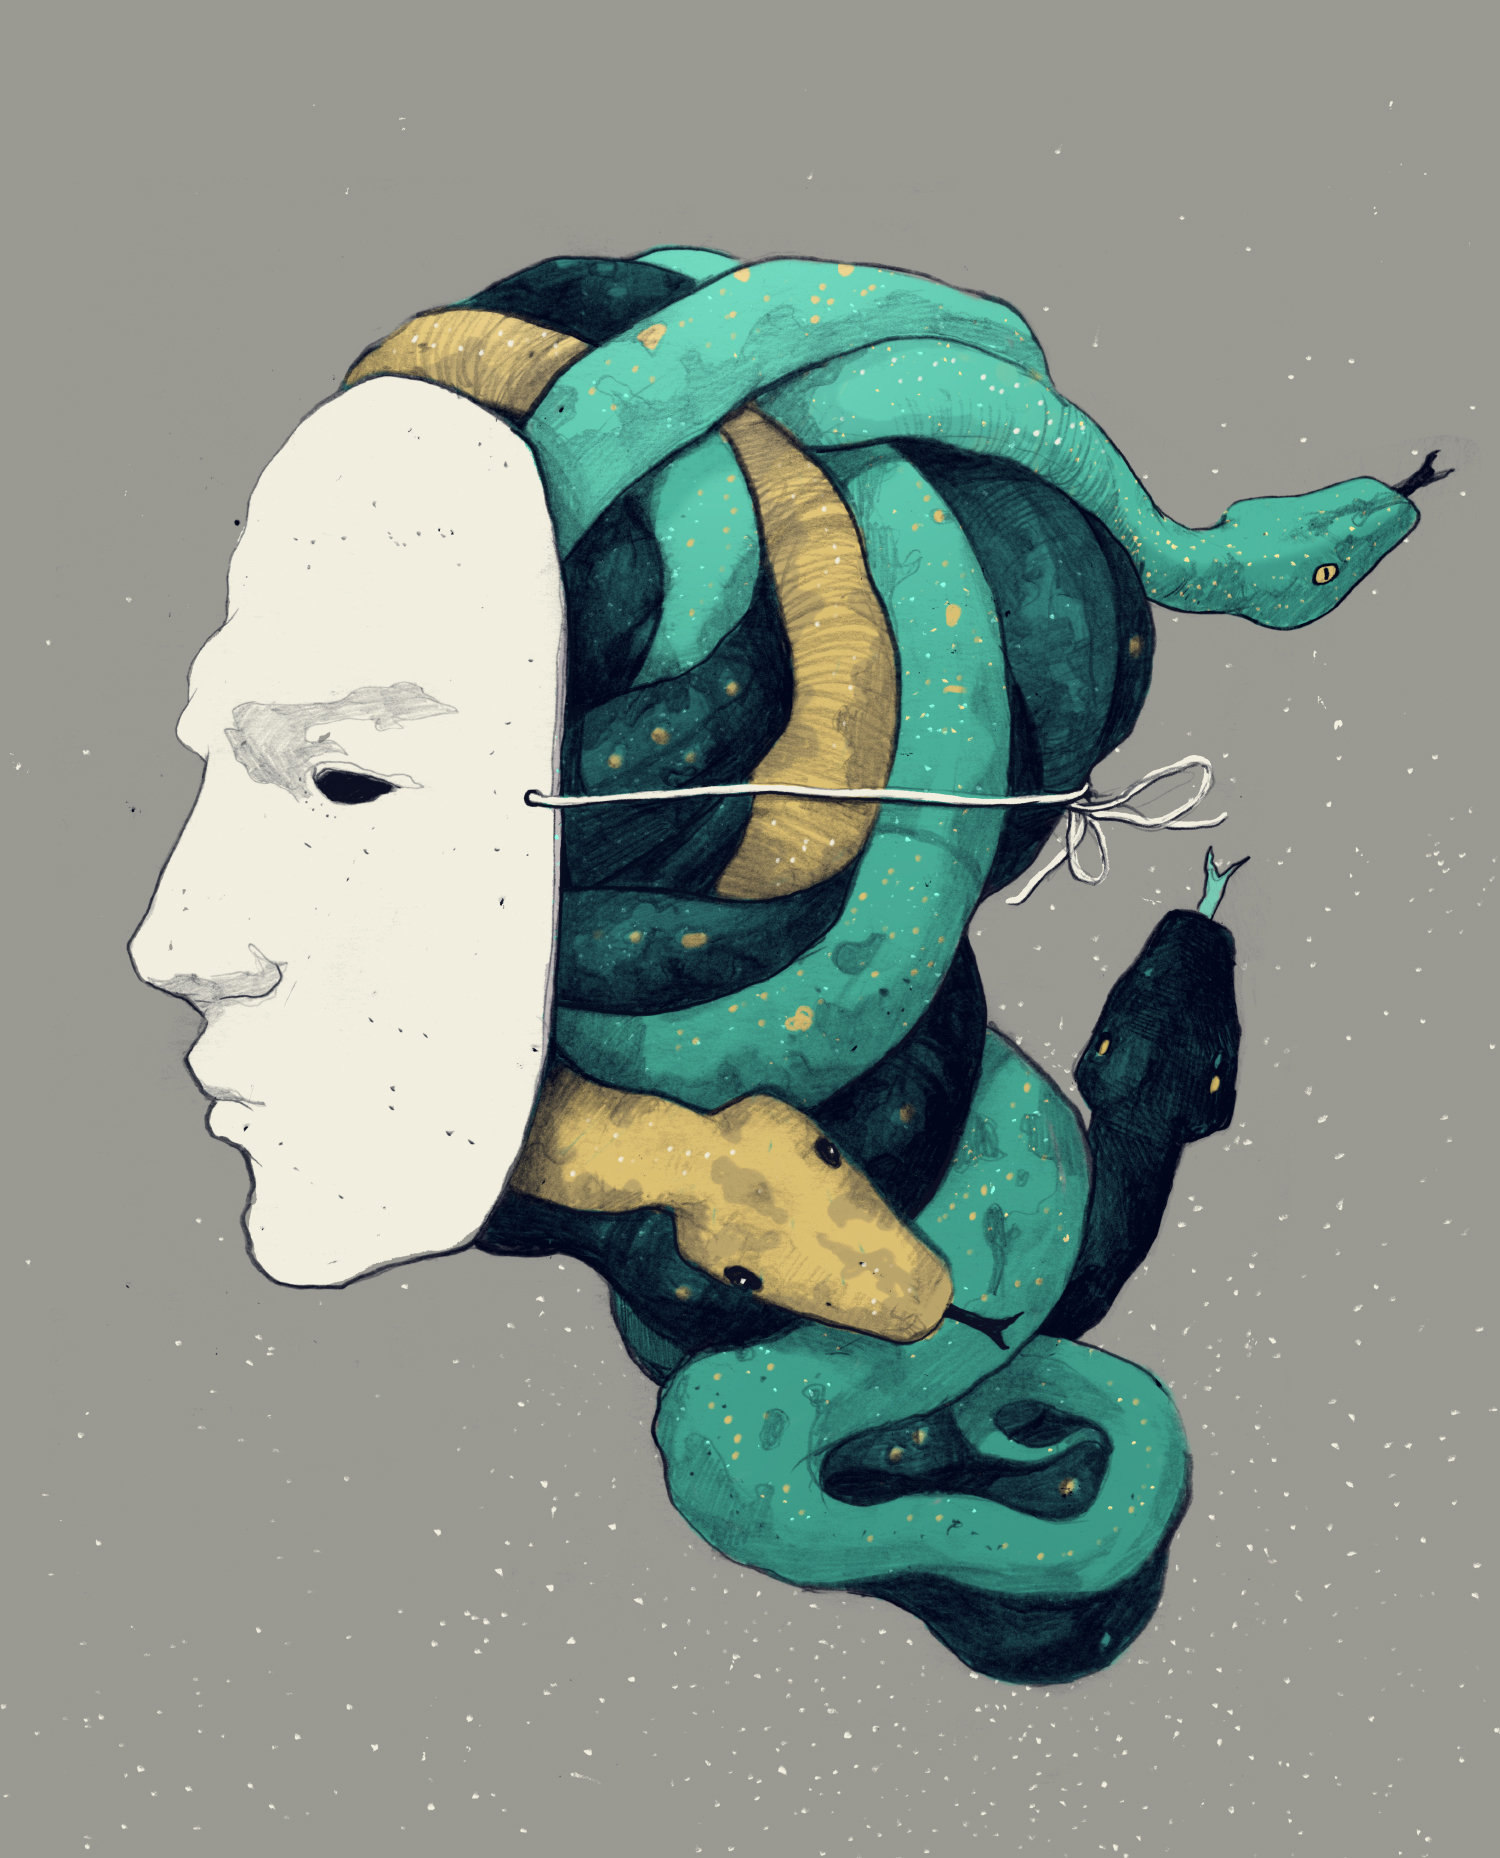 mask and snakes, portrait by simon prades